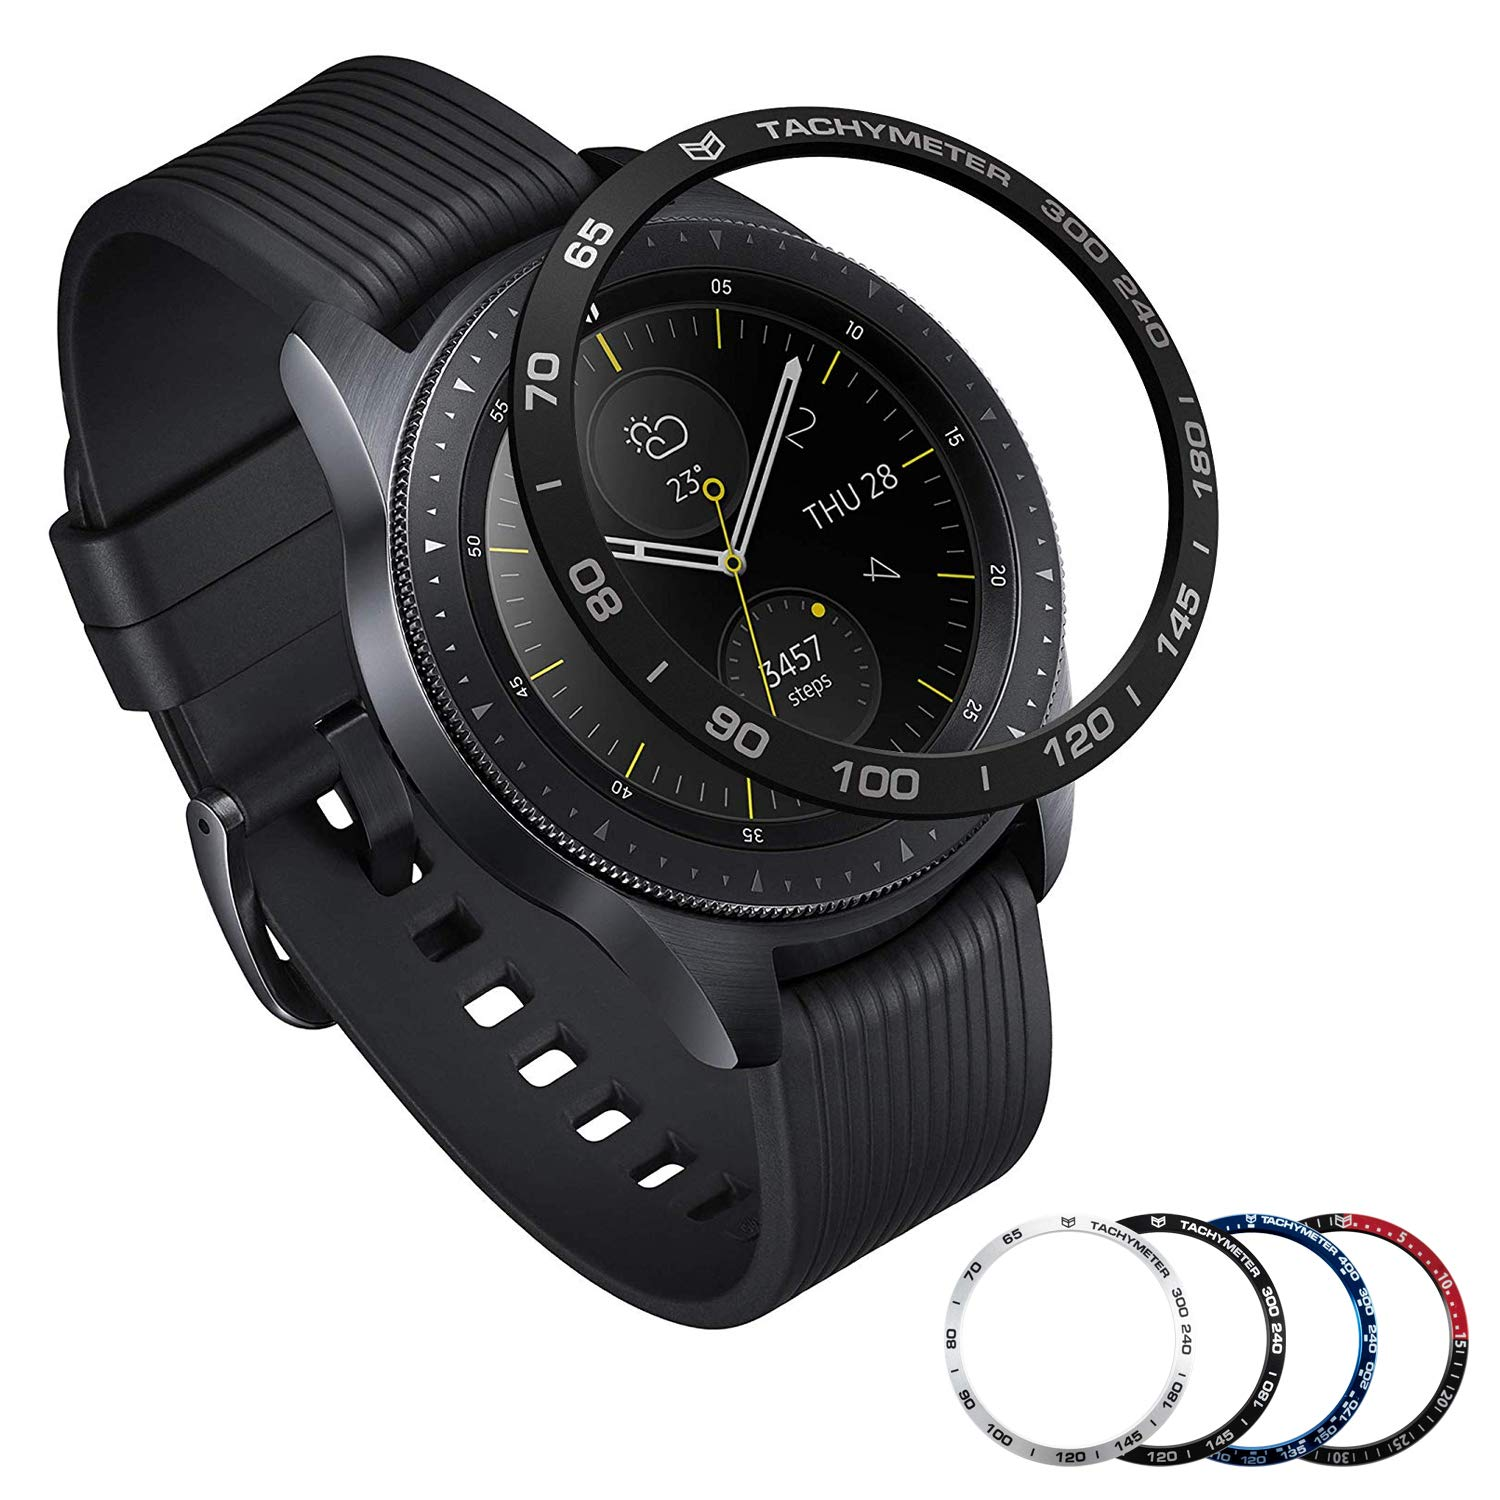 [Aluminum] Galaxy Watch 46mm Bezel Styling, Galaxy Gear S3 Frontier & Classic Bezel Ring Adhesive Cover Anti Scratch Aluminium Protection Tachymeter, Design for The Galaxy Watch Accessories - Black by Yawenner